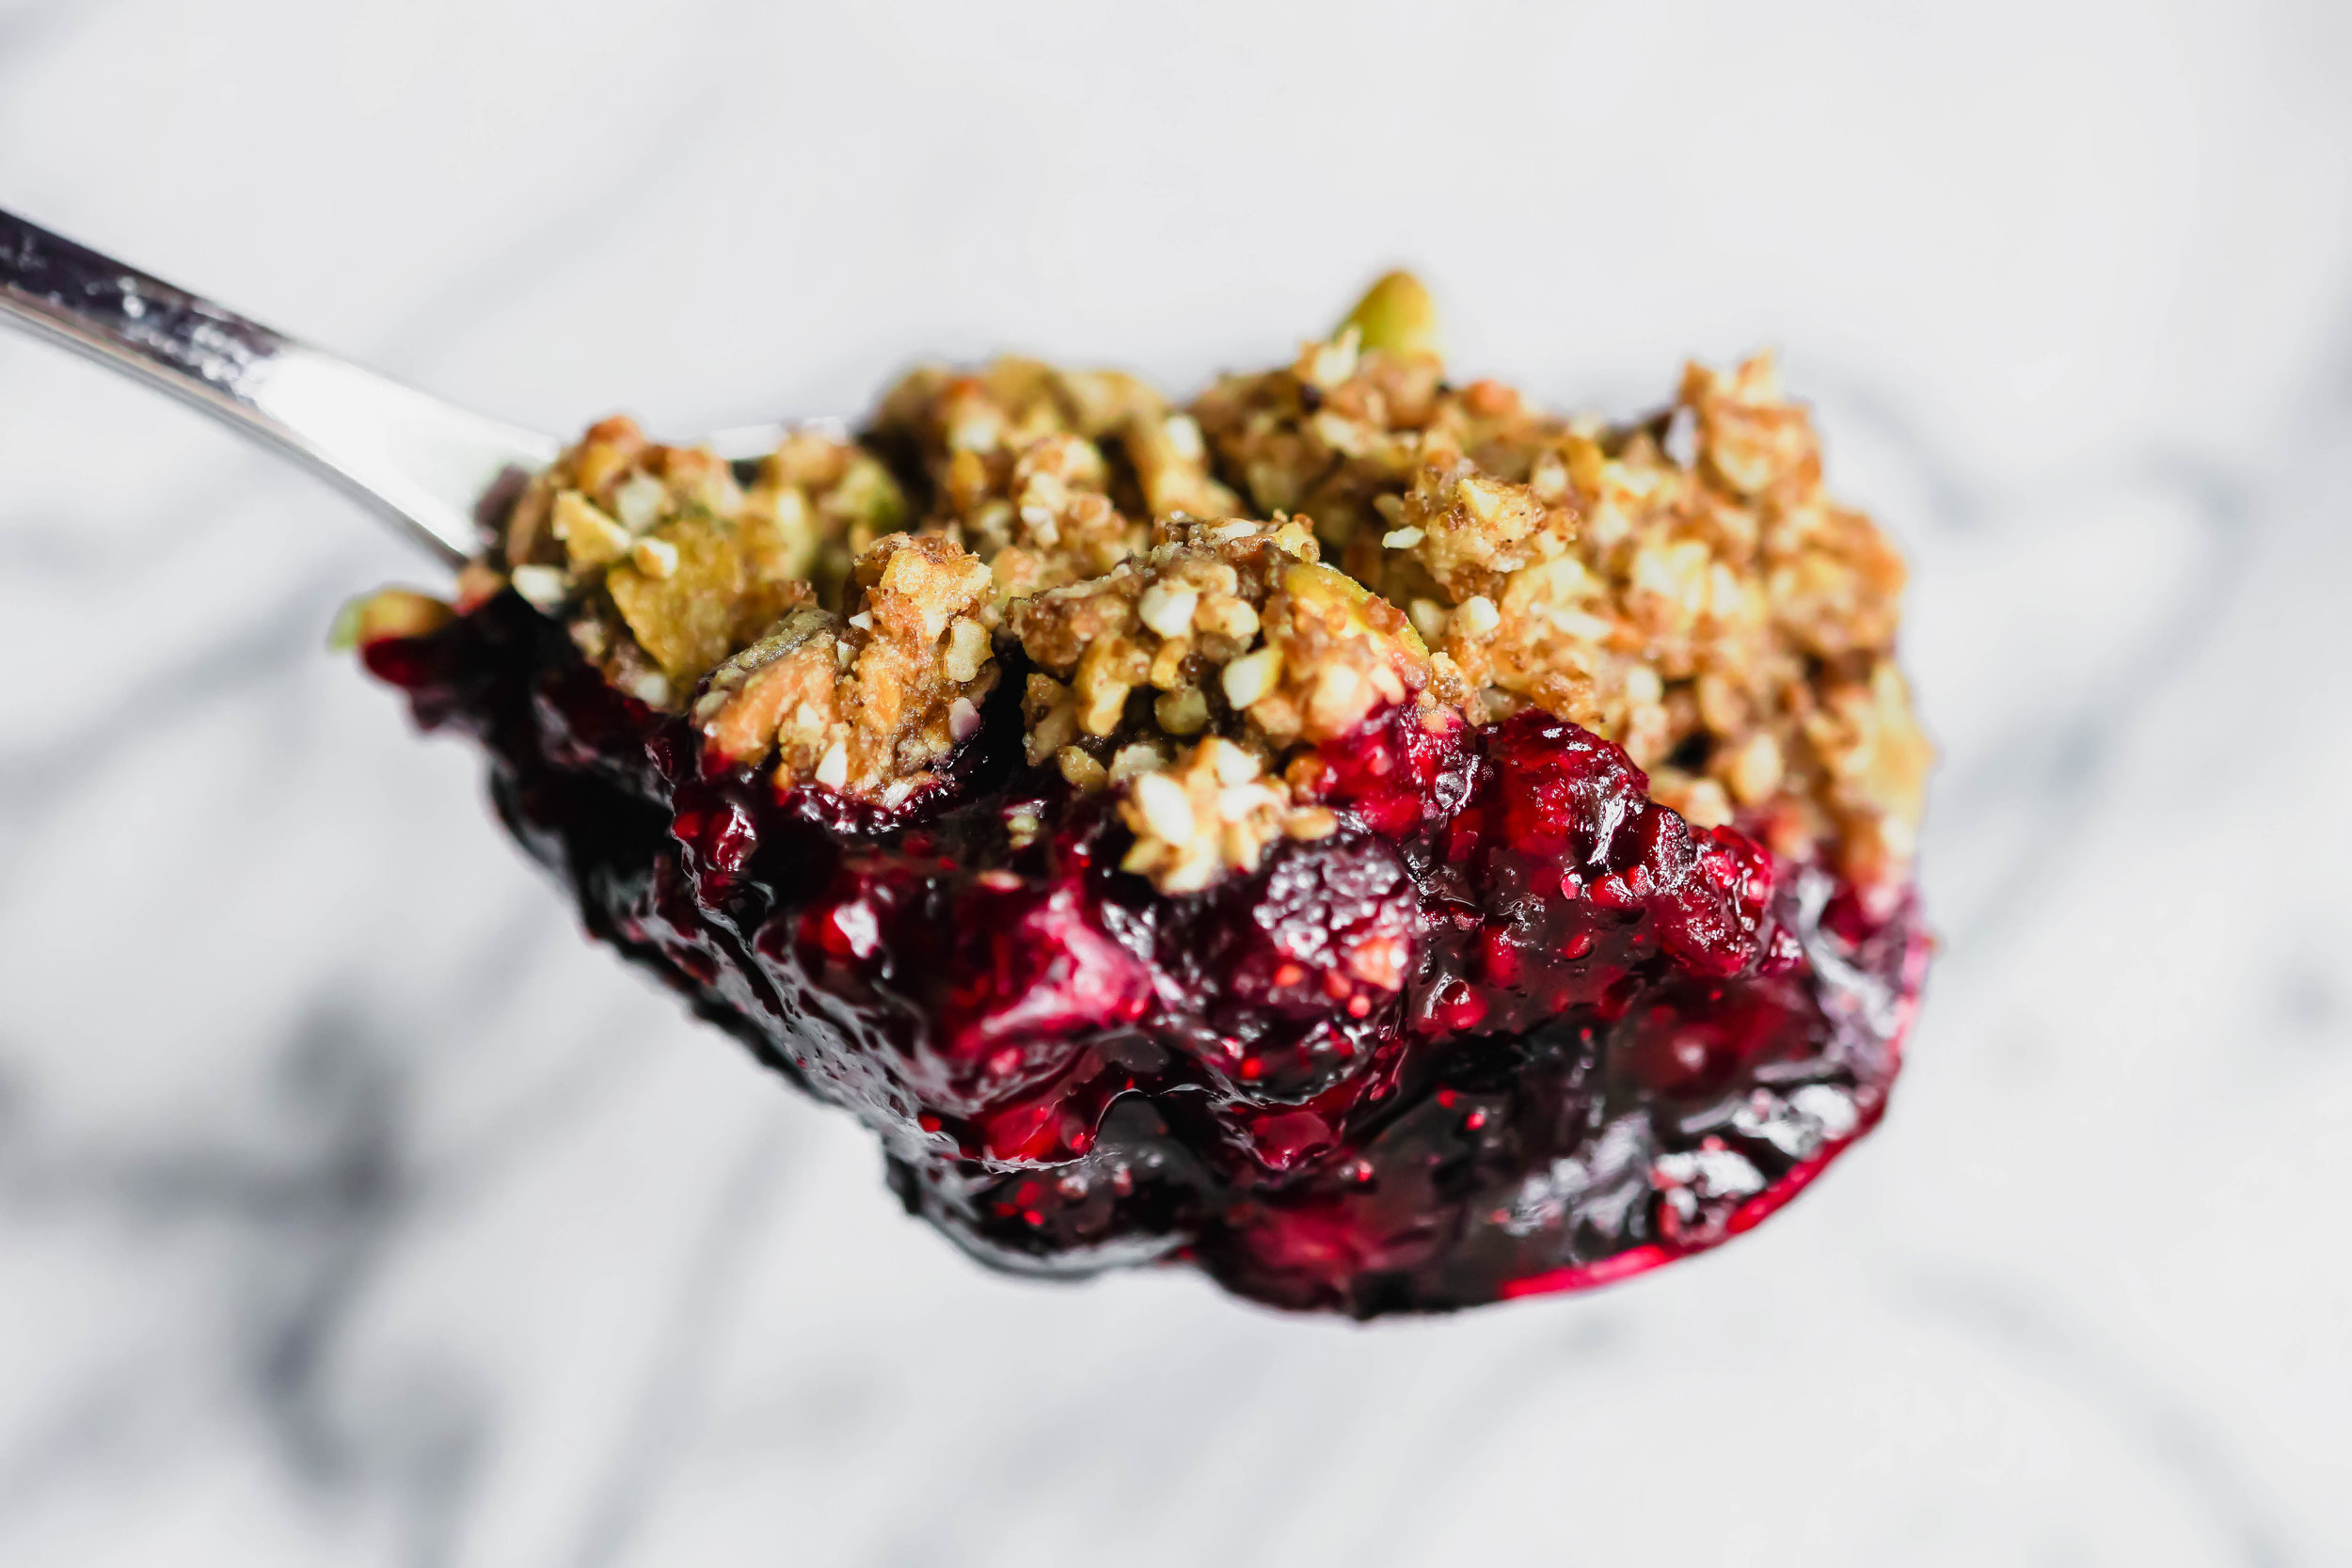 Blueberry Crumble with Buckwheat and Seed Topping (GF)